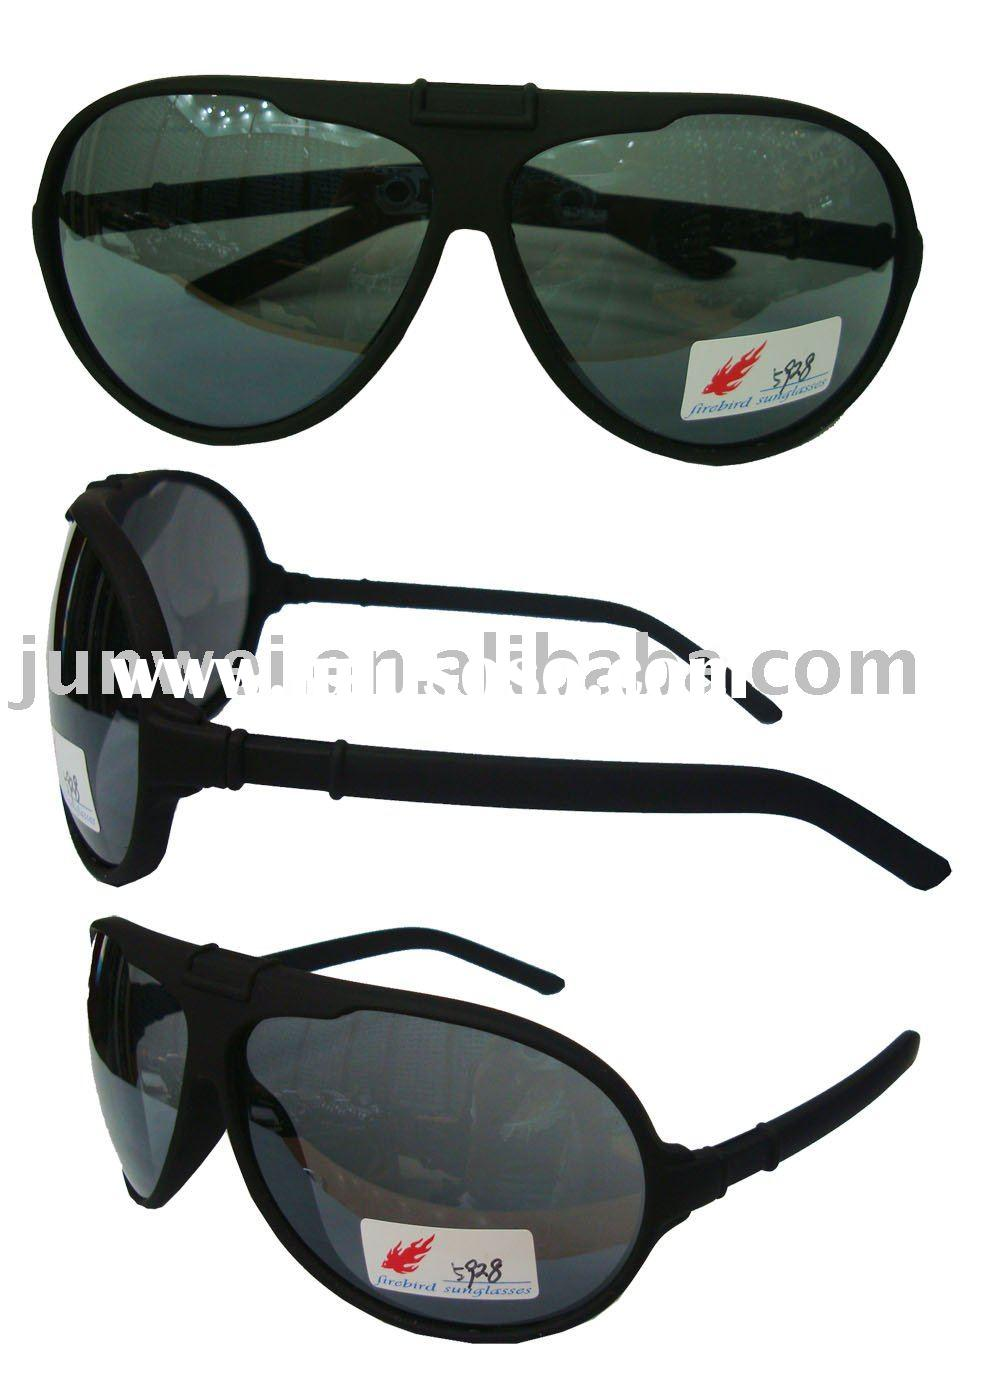 branded sunglasses/sunglasses/sport sunglasses/fishing sunglasses/sport eyewear/snowing glasses/